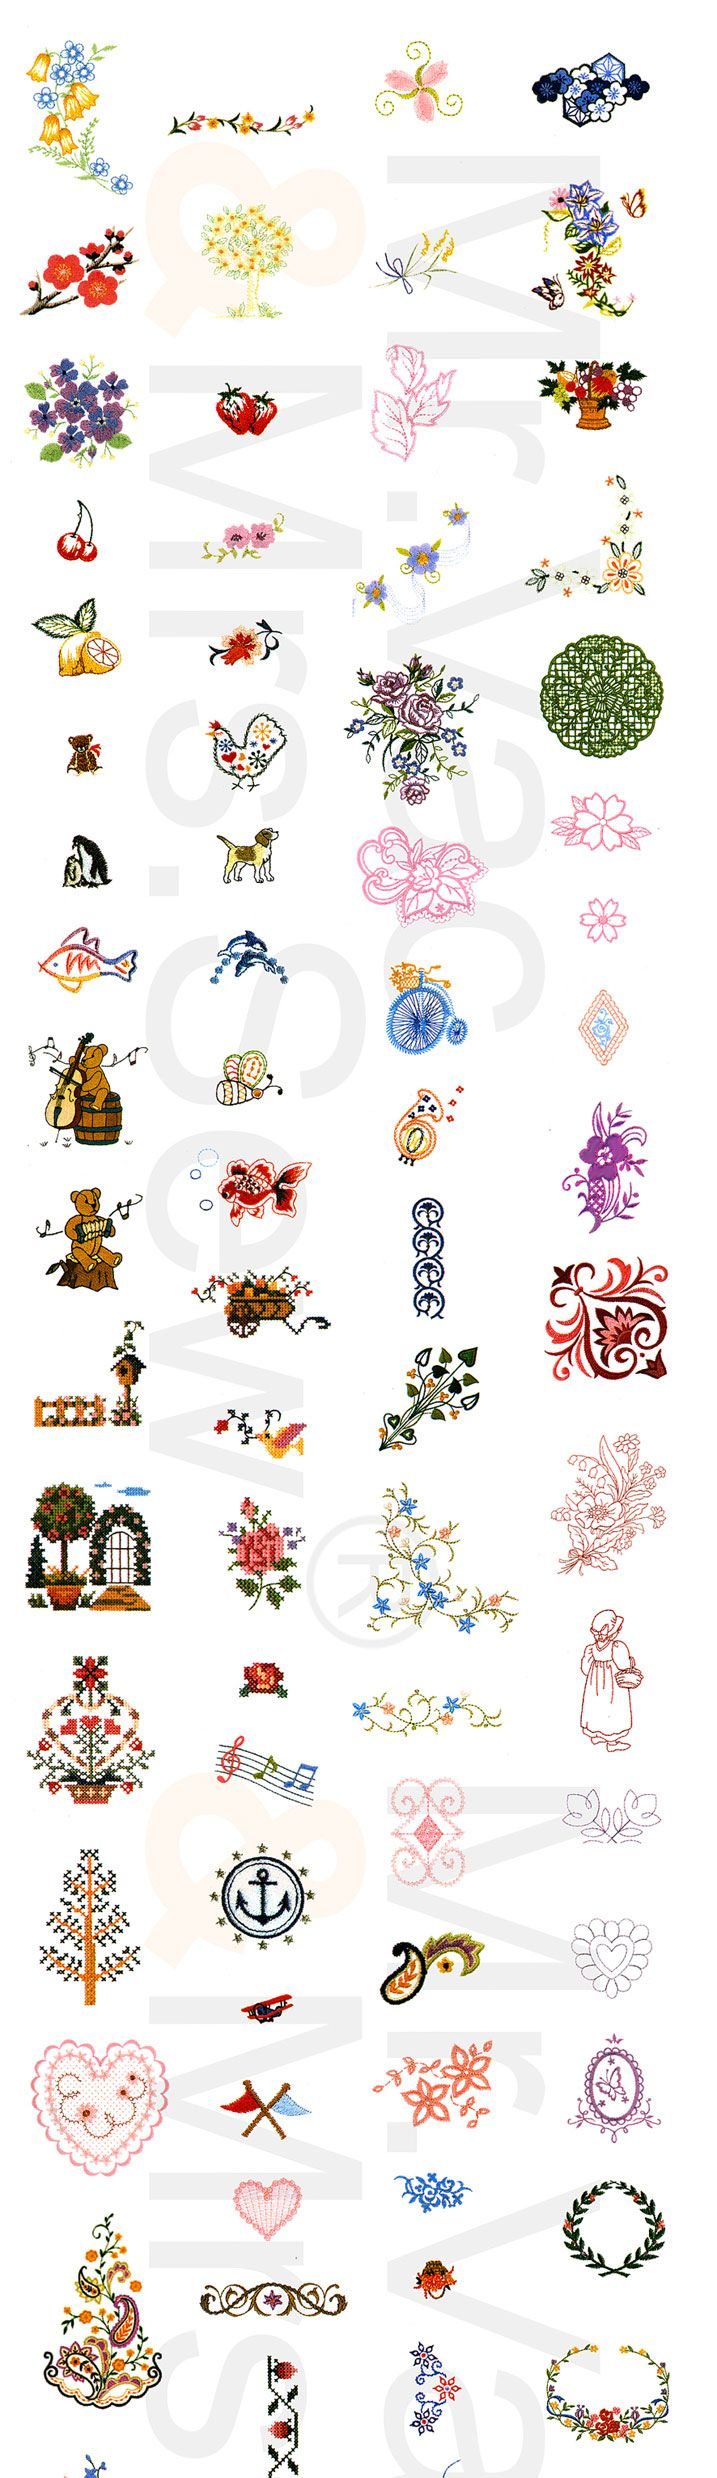 Best images about embroidery designs other on pinterest